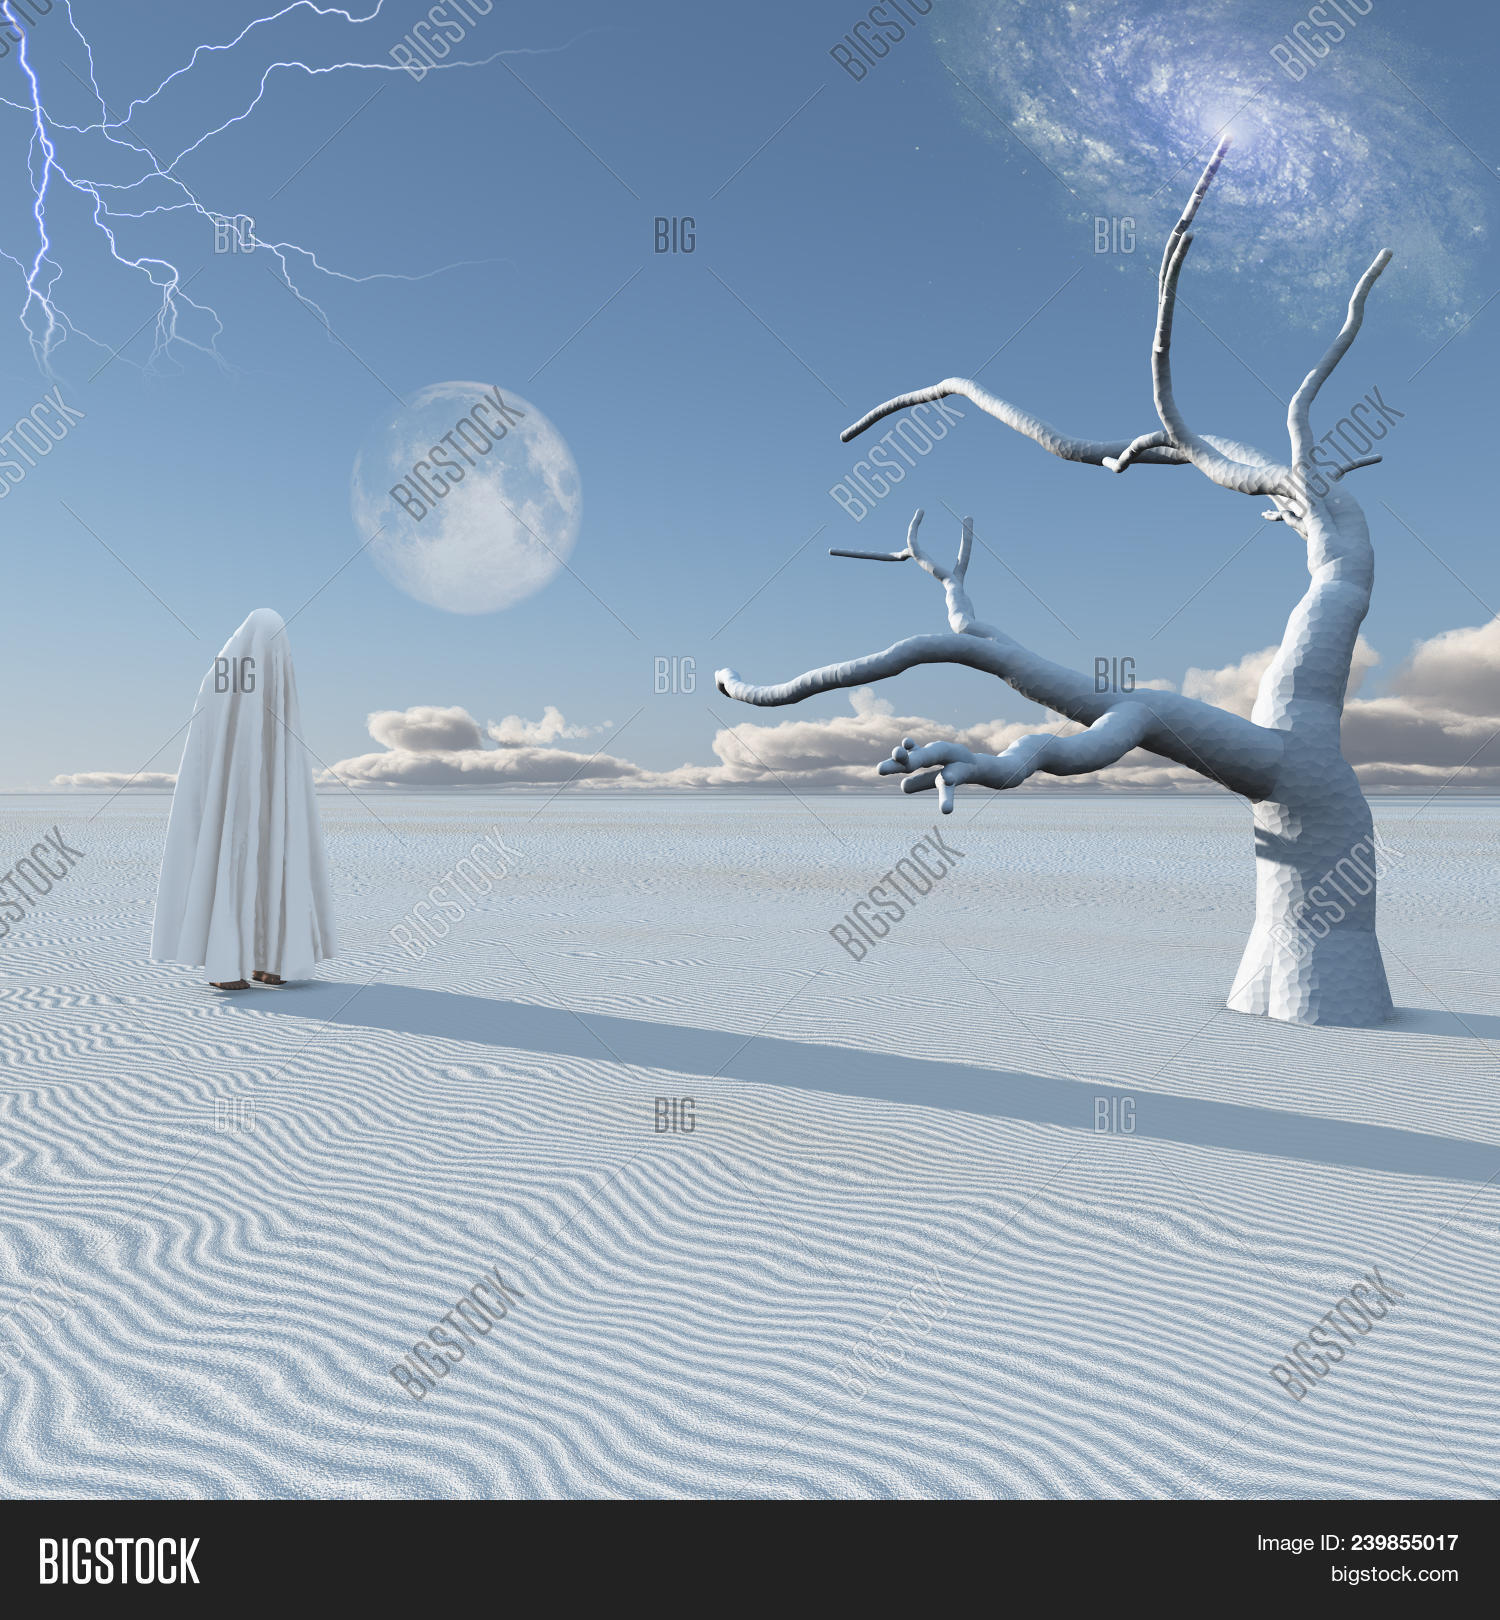 3d rendering,abstract,alone,art,bizarre,branch,burka,cloak,cloth,dead,death,desert,dramatic,dream,dune,eerie,environment,fantasy,fear,galaxy,ghost,god,hijab,landscape,lightning,lonely,moon,muslim,mysterious,nature,nothing,phantom,planet,sand,sandy,silhouette,sky,spirit,spooky,strange,surreal,surrealism,time,travel,tree,unknown,unreal,white,zen